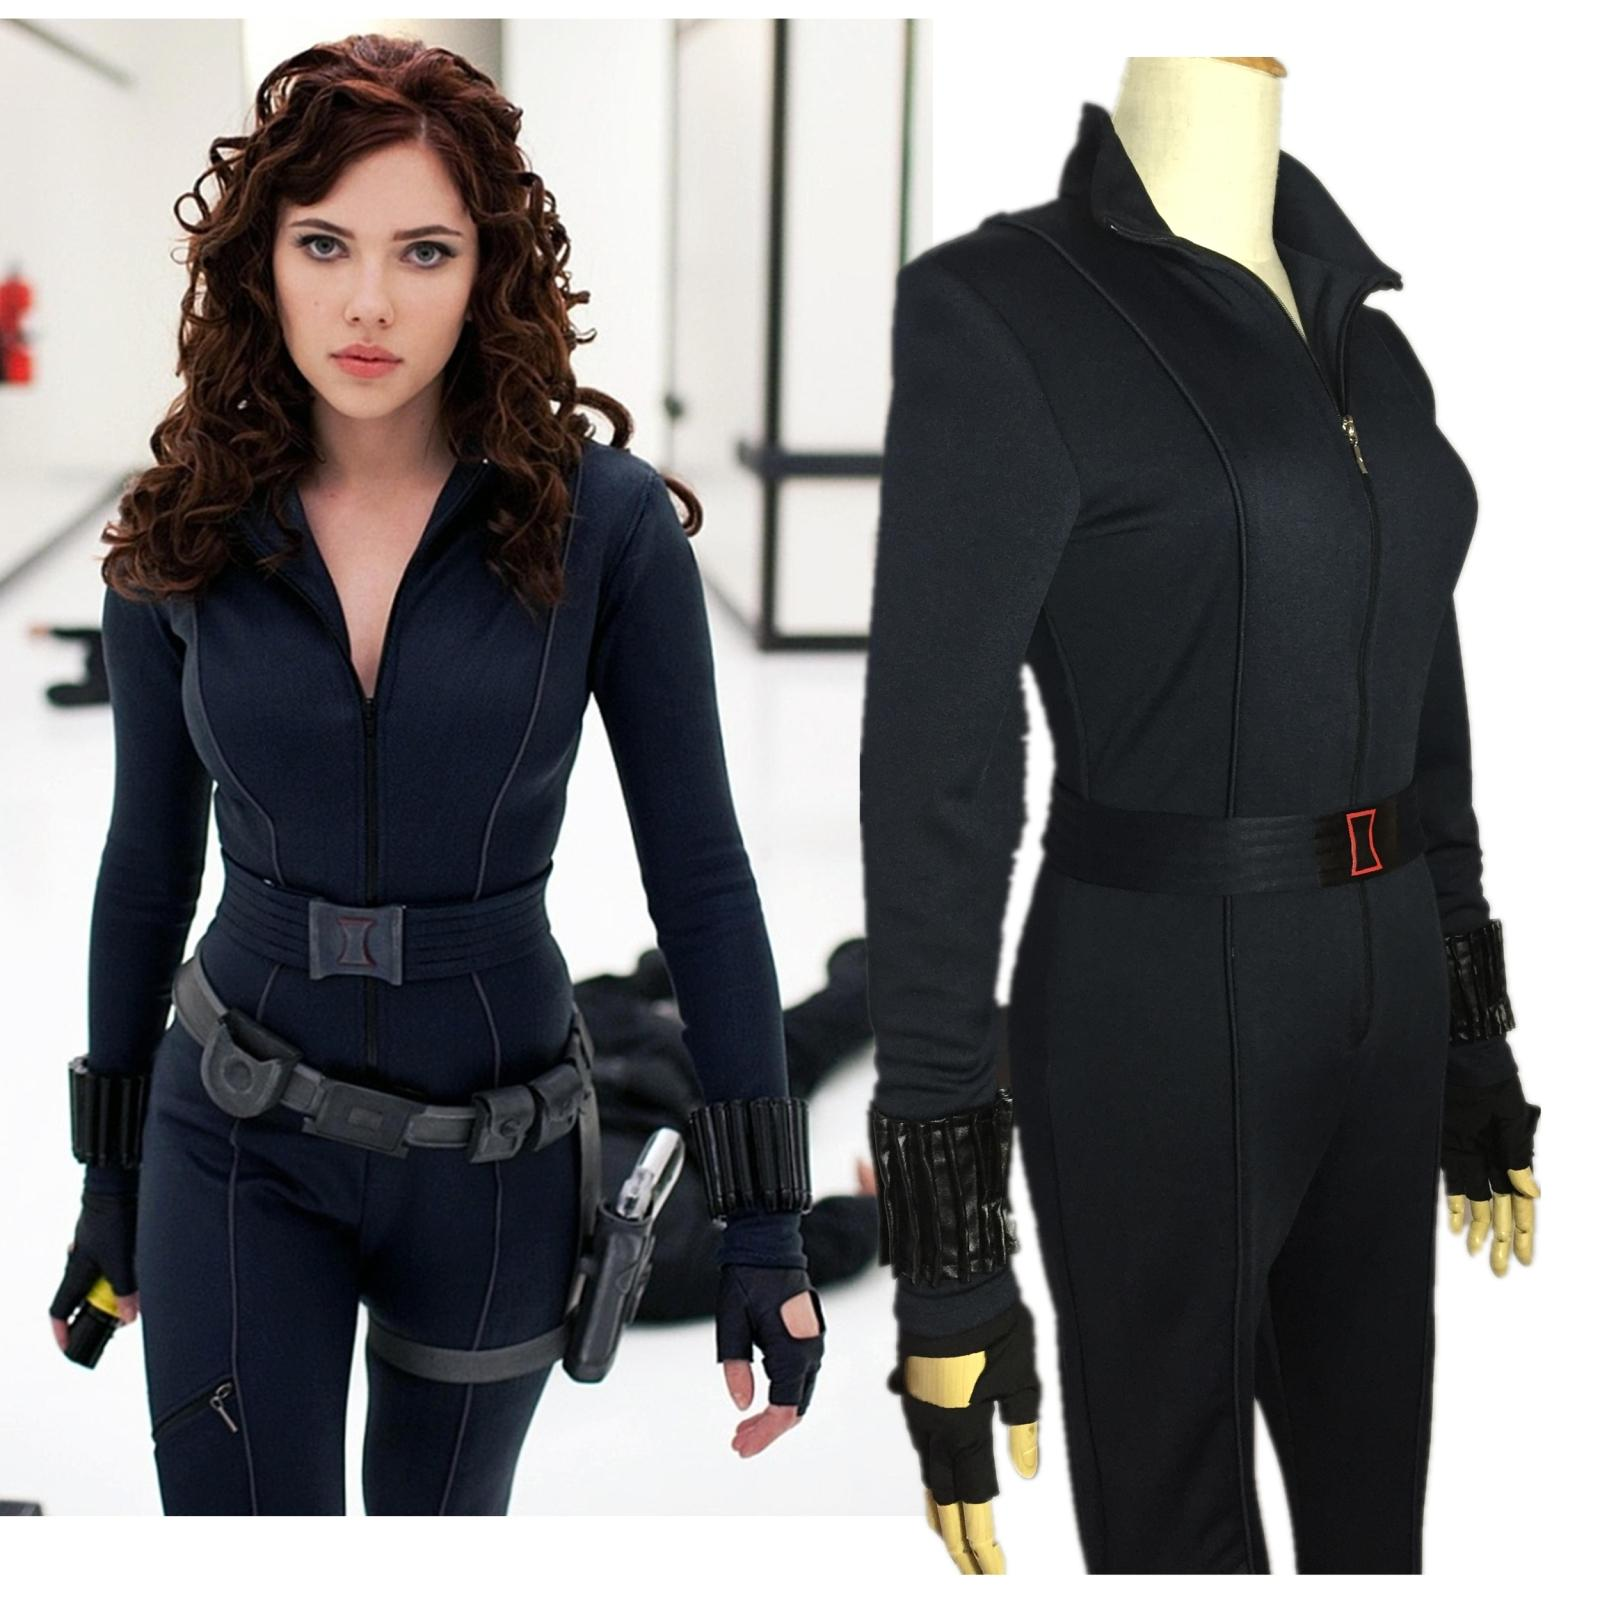 Usd 60 38 Captain America 3 Black Widow Cosplay Avengers